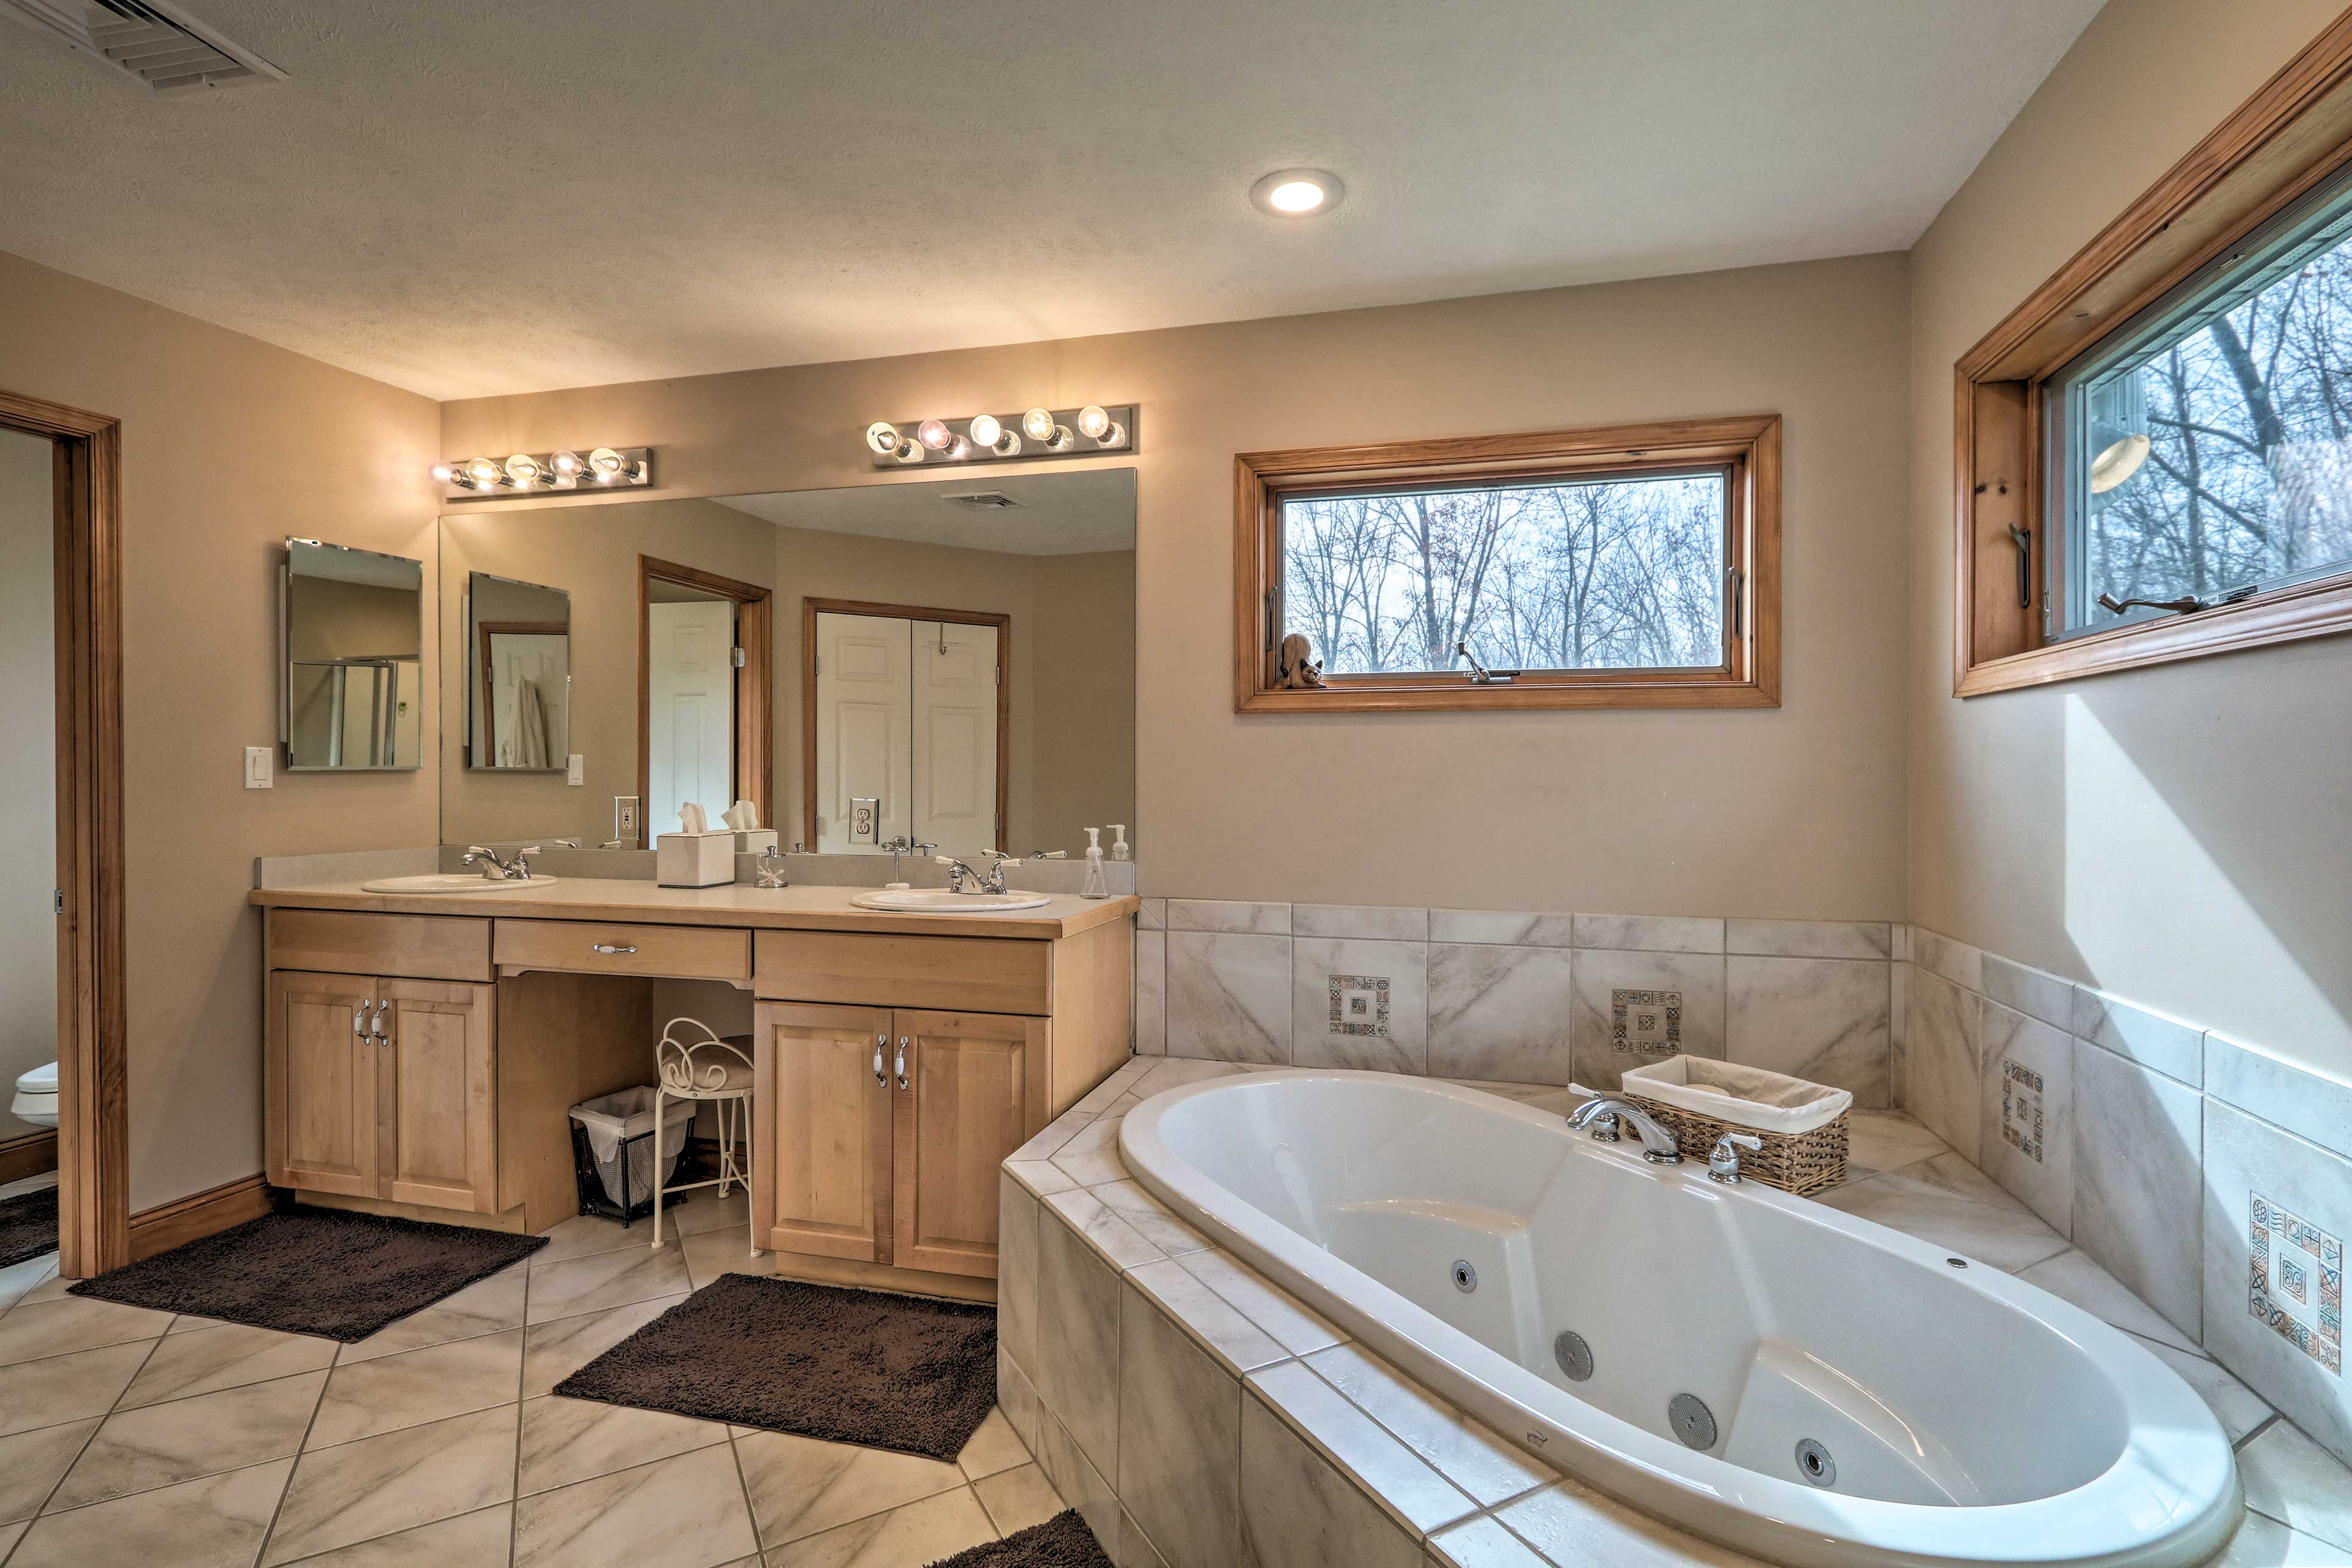 The master bathroom features a jetted tub.